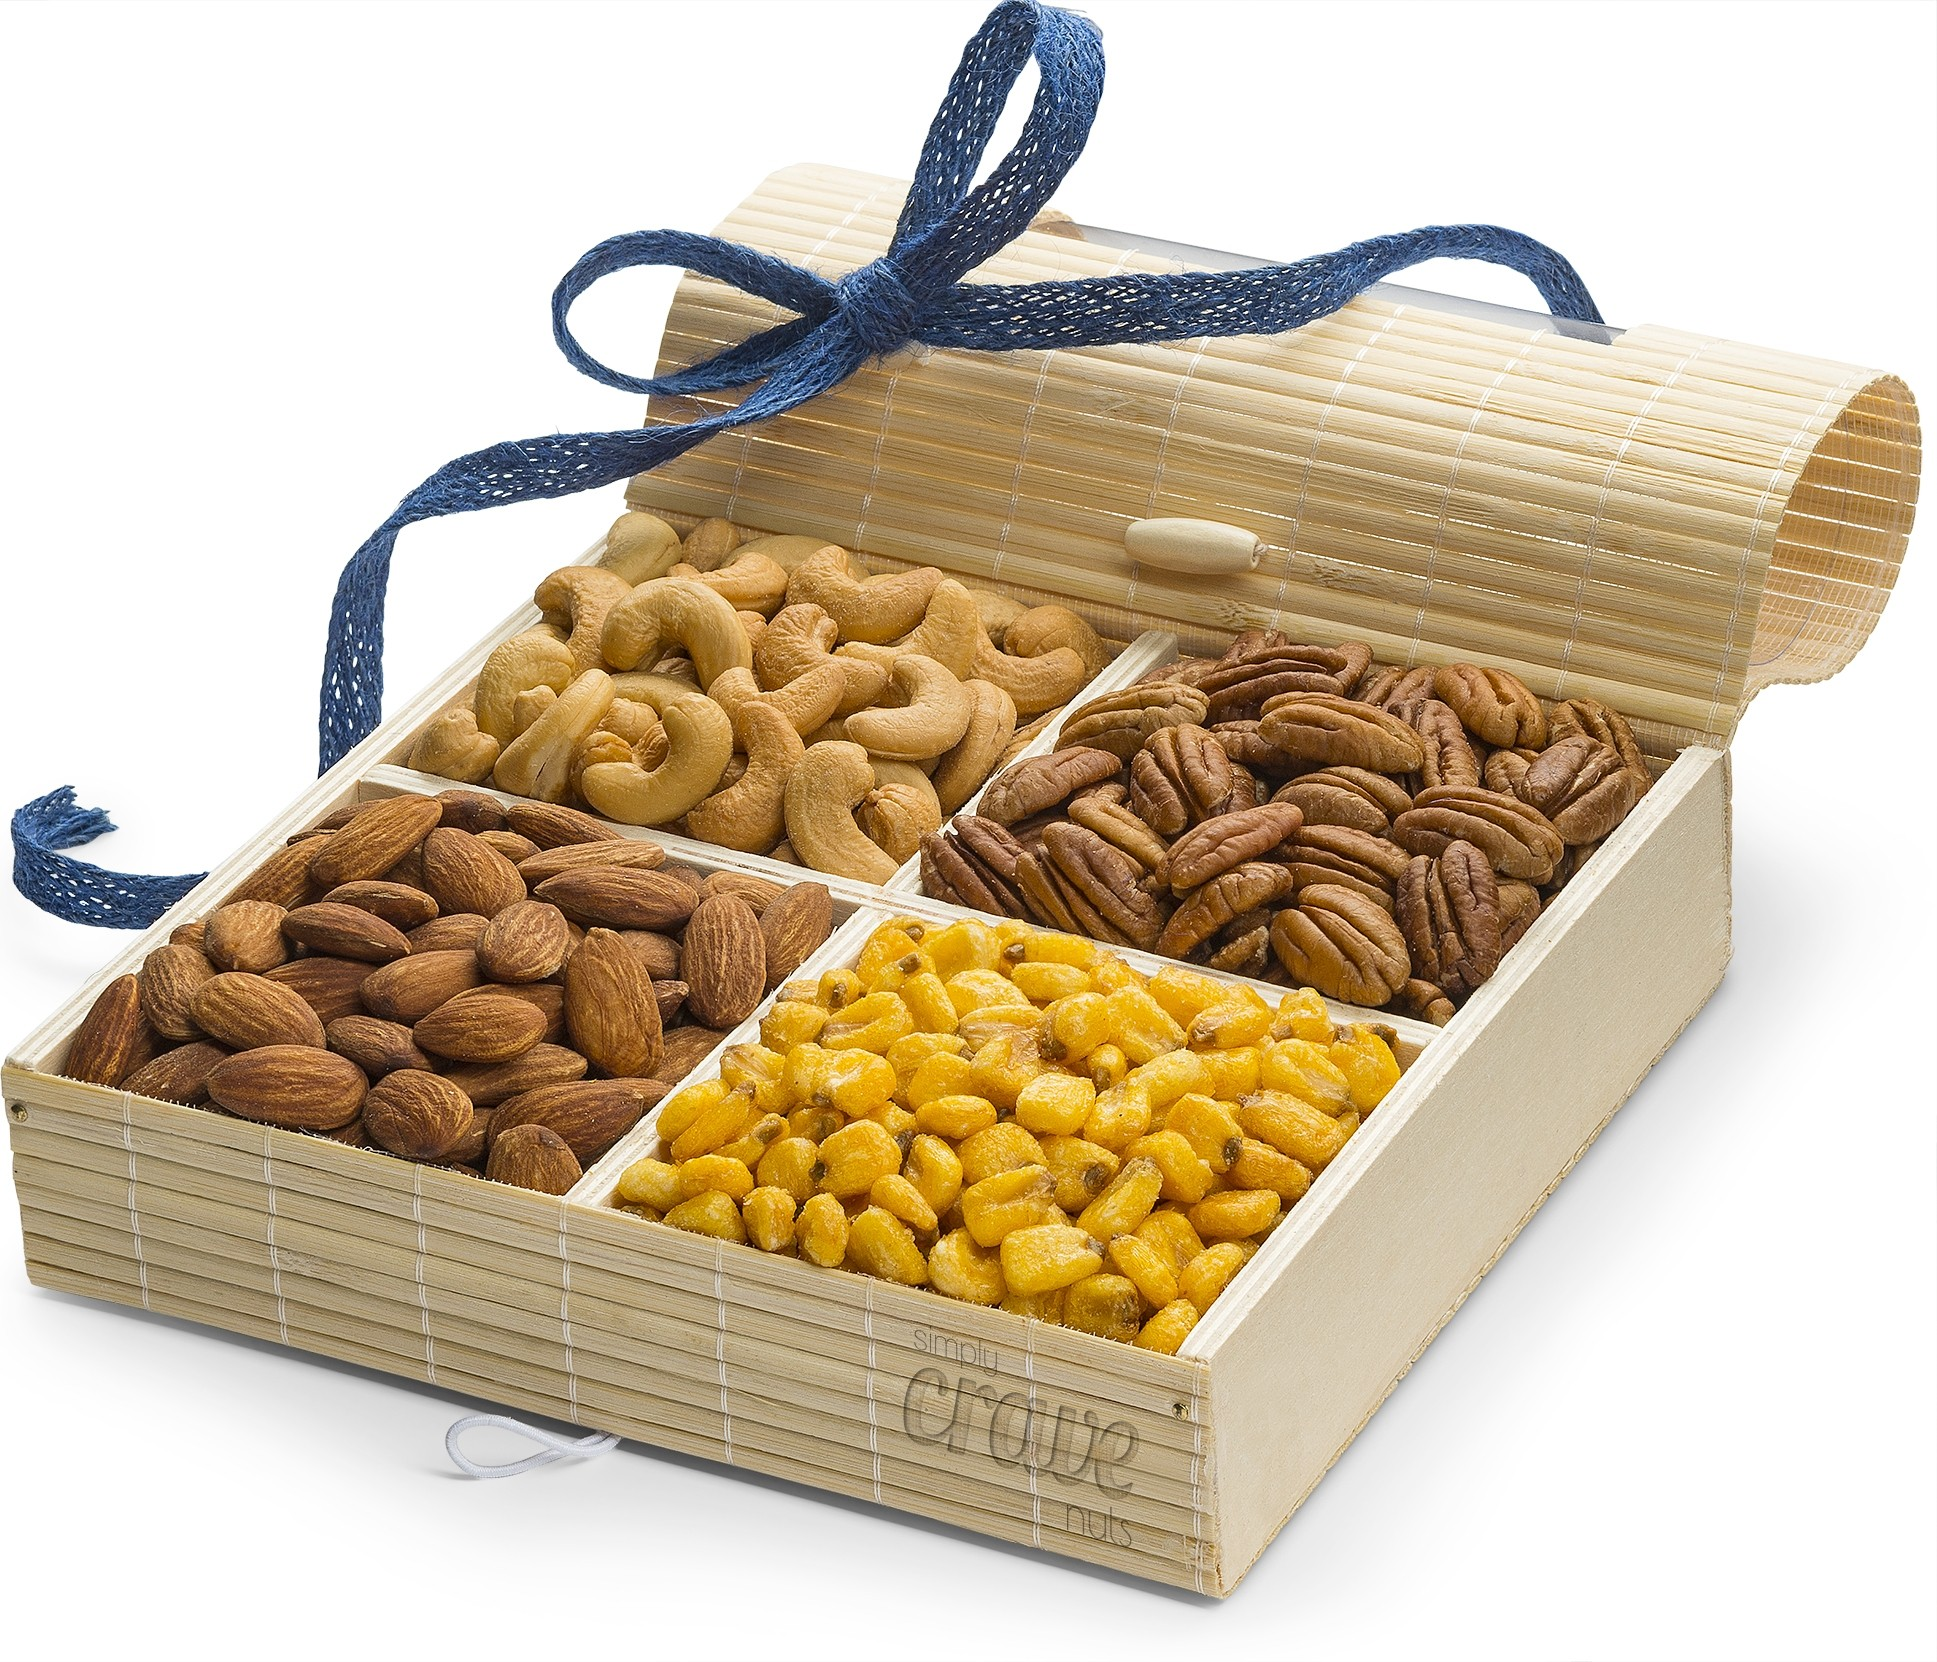 Simply Crave Nut Gift Baskets, Gourmet Food Gift, Nuts Tray Gift Assortment, Classic (Large)